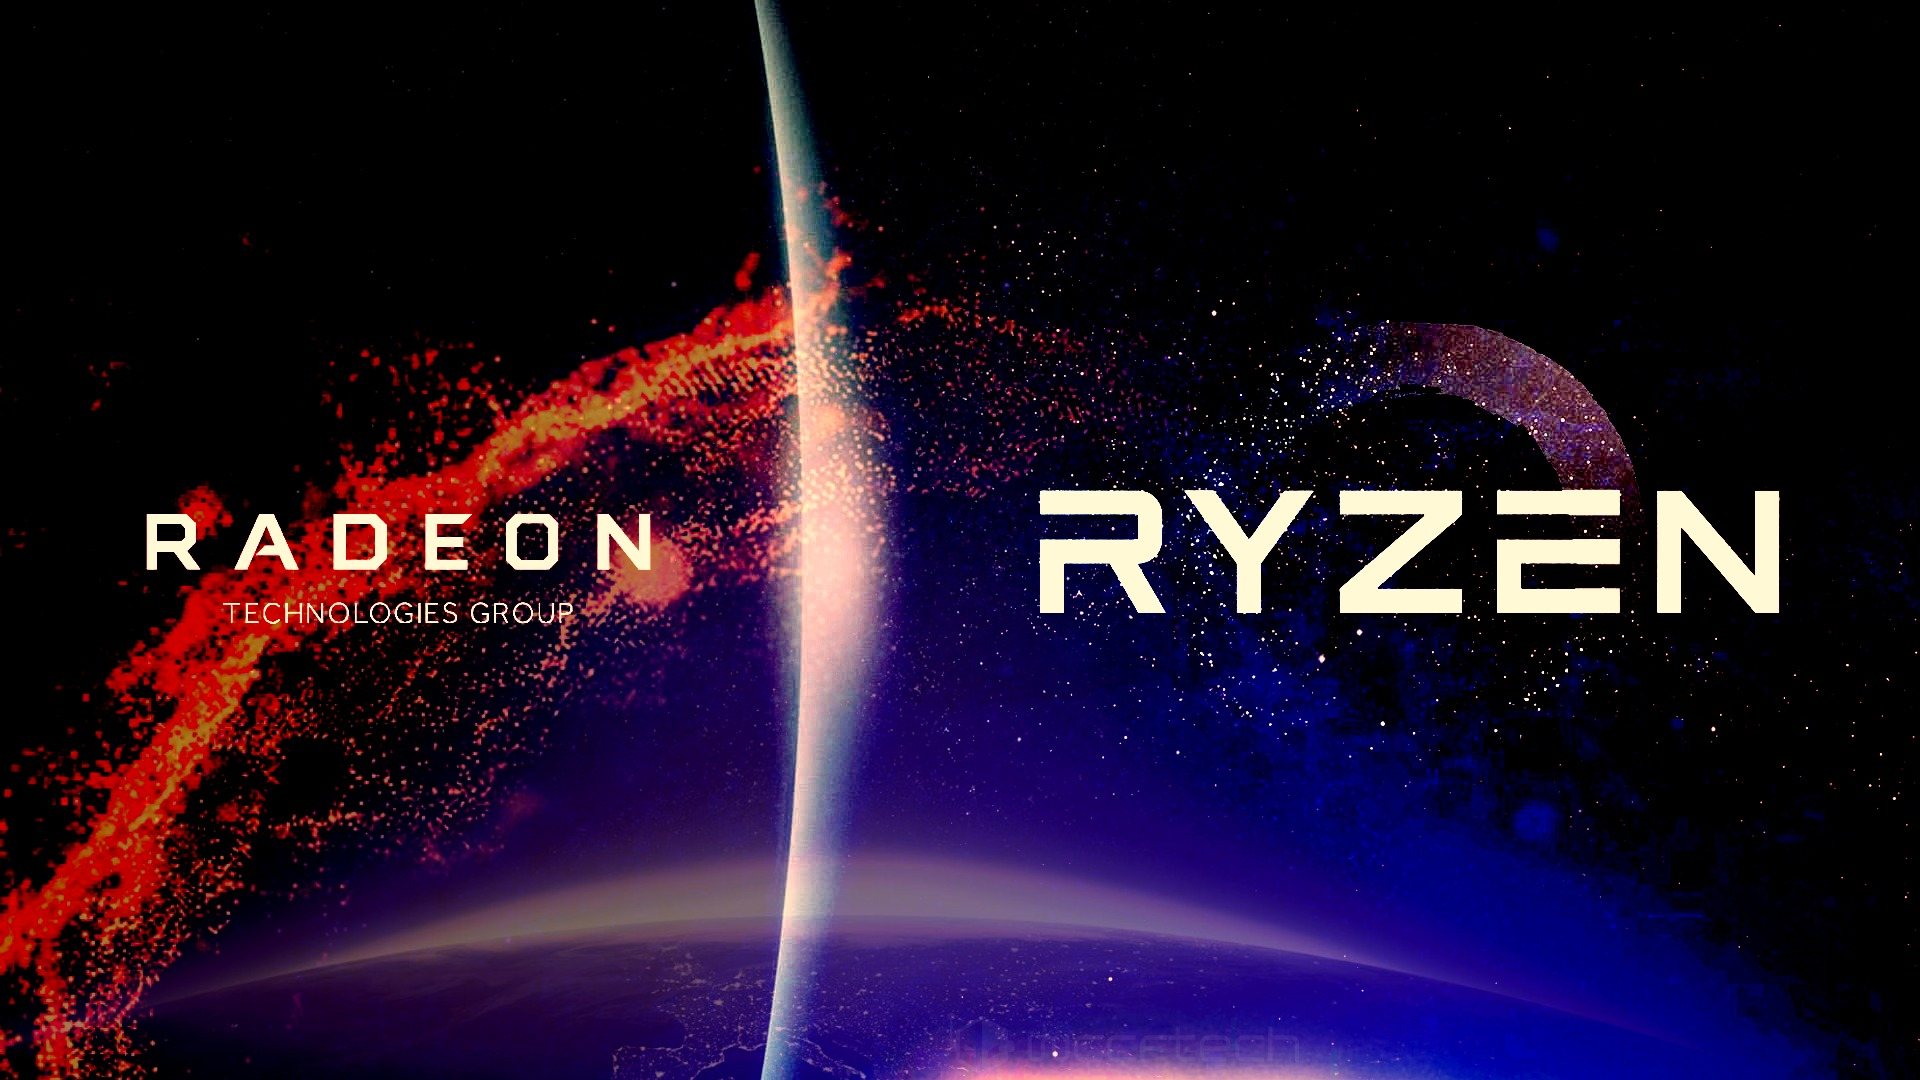 AMD Navi @ 7nm and AMD Ryzen 3000 will be announced during Computex 2019